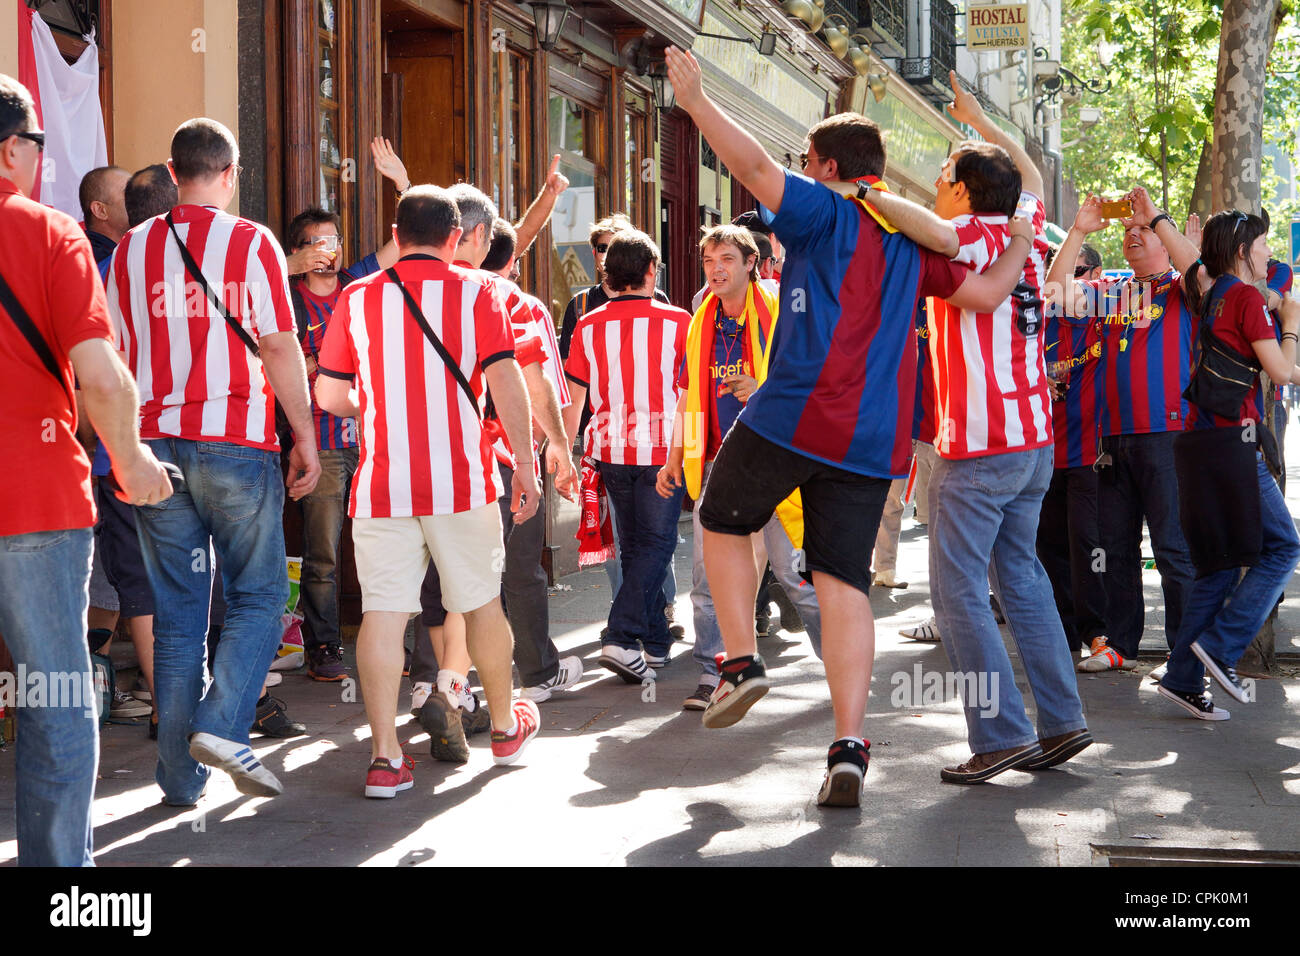 The final of the Copa del Rey has Madrid buzzing with Athletic Bilbao and FC Barcelona supporters. - Stock Image